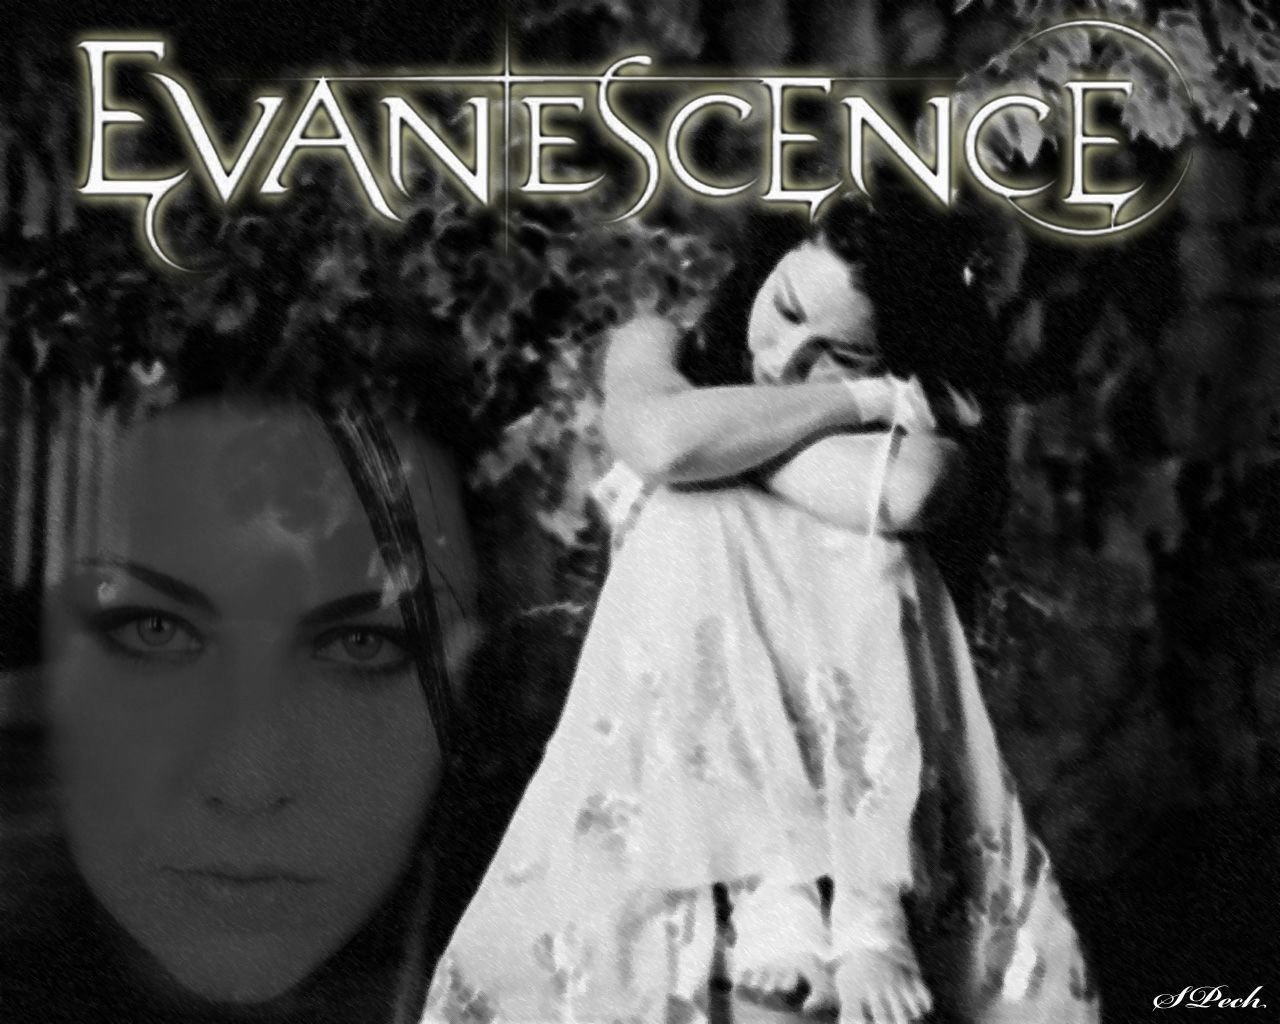 Evanescence 2015 Wallpapers 1280x1024